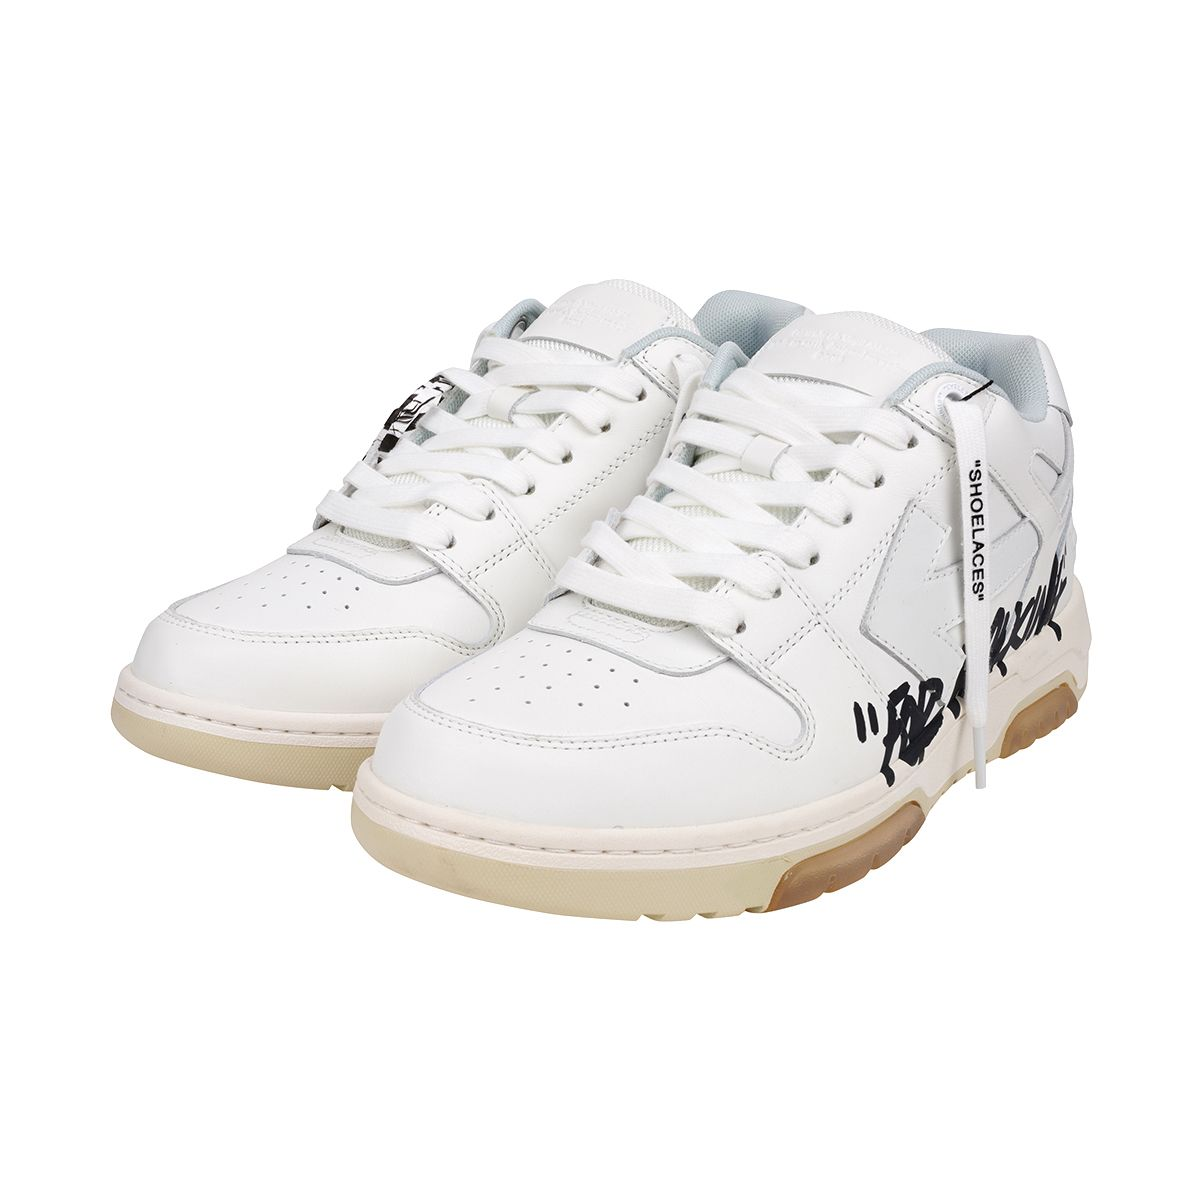 OFF-WHITE c/o Virgil Abloh MENS OUF OF OFFICE CALF SPECIALS / 0101 : WHITE WHITE